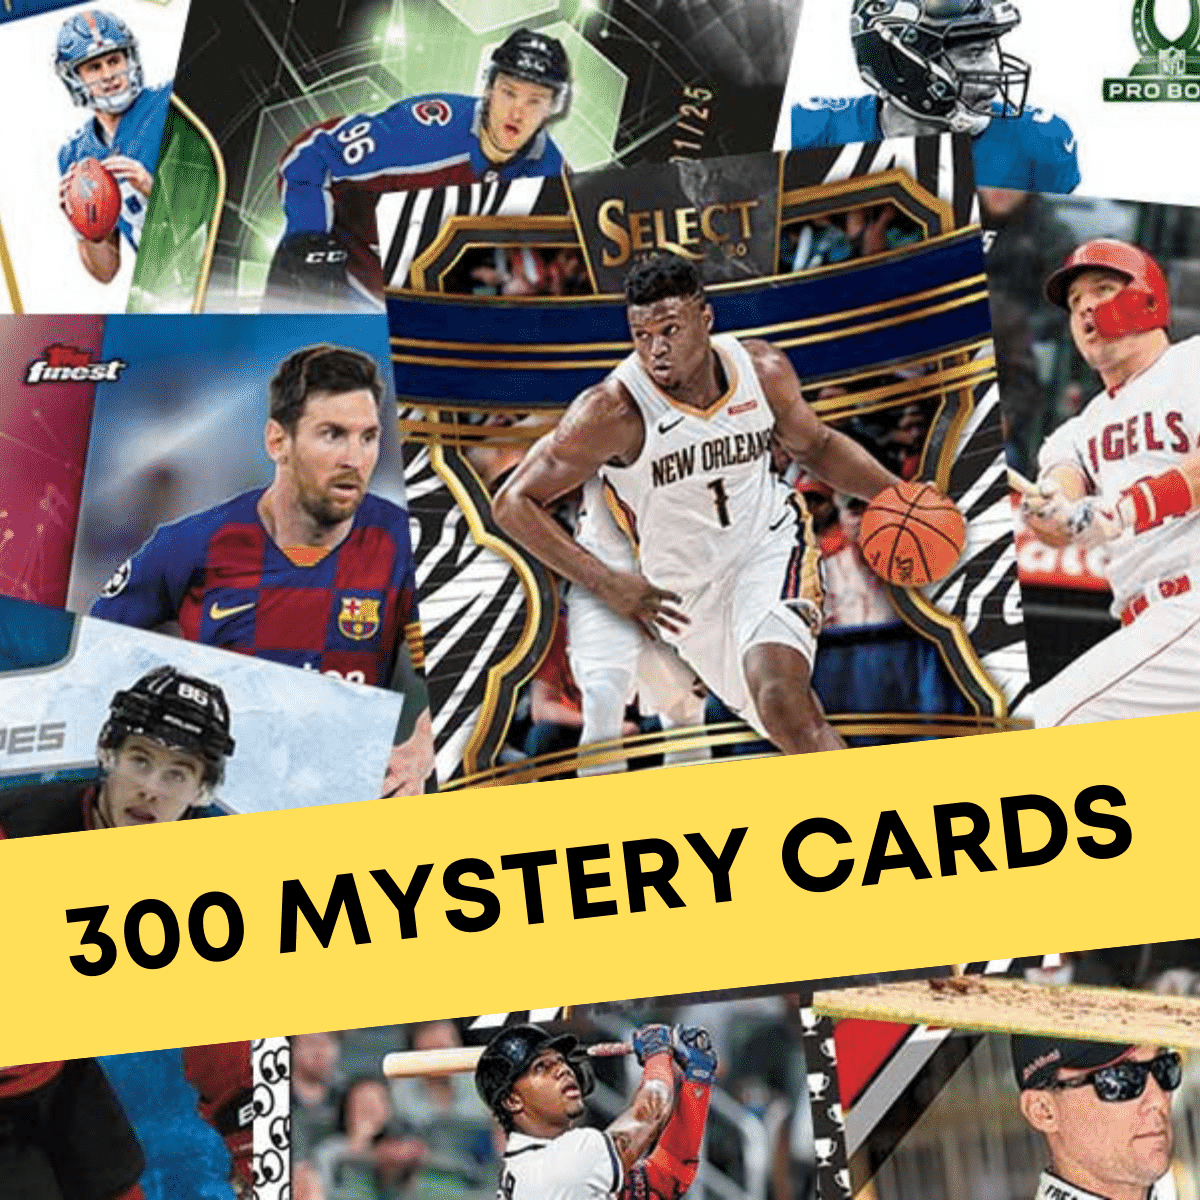 300 Mystery Sports Cards